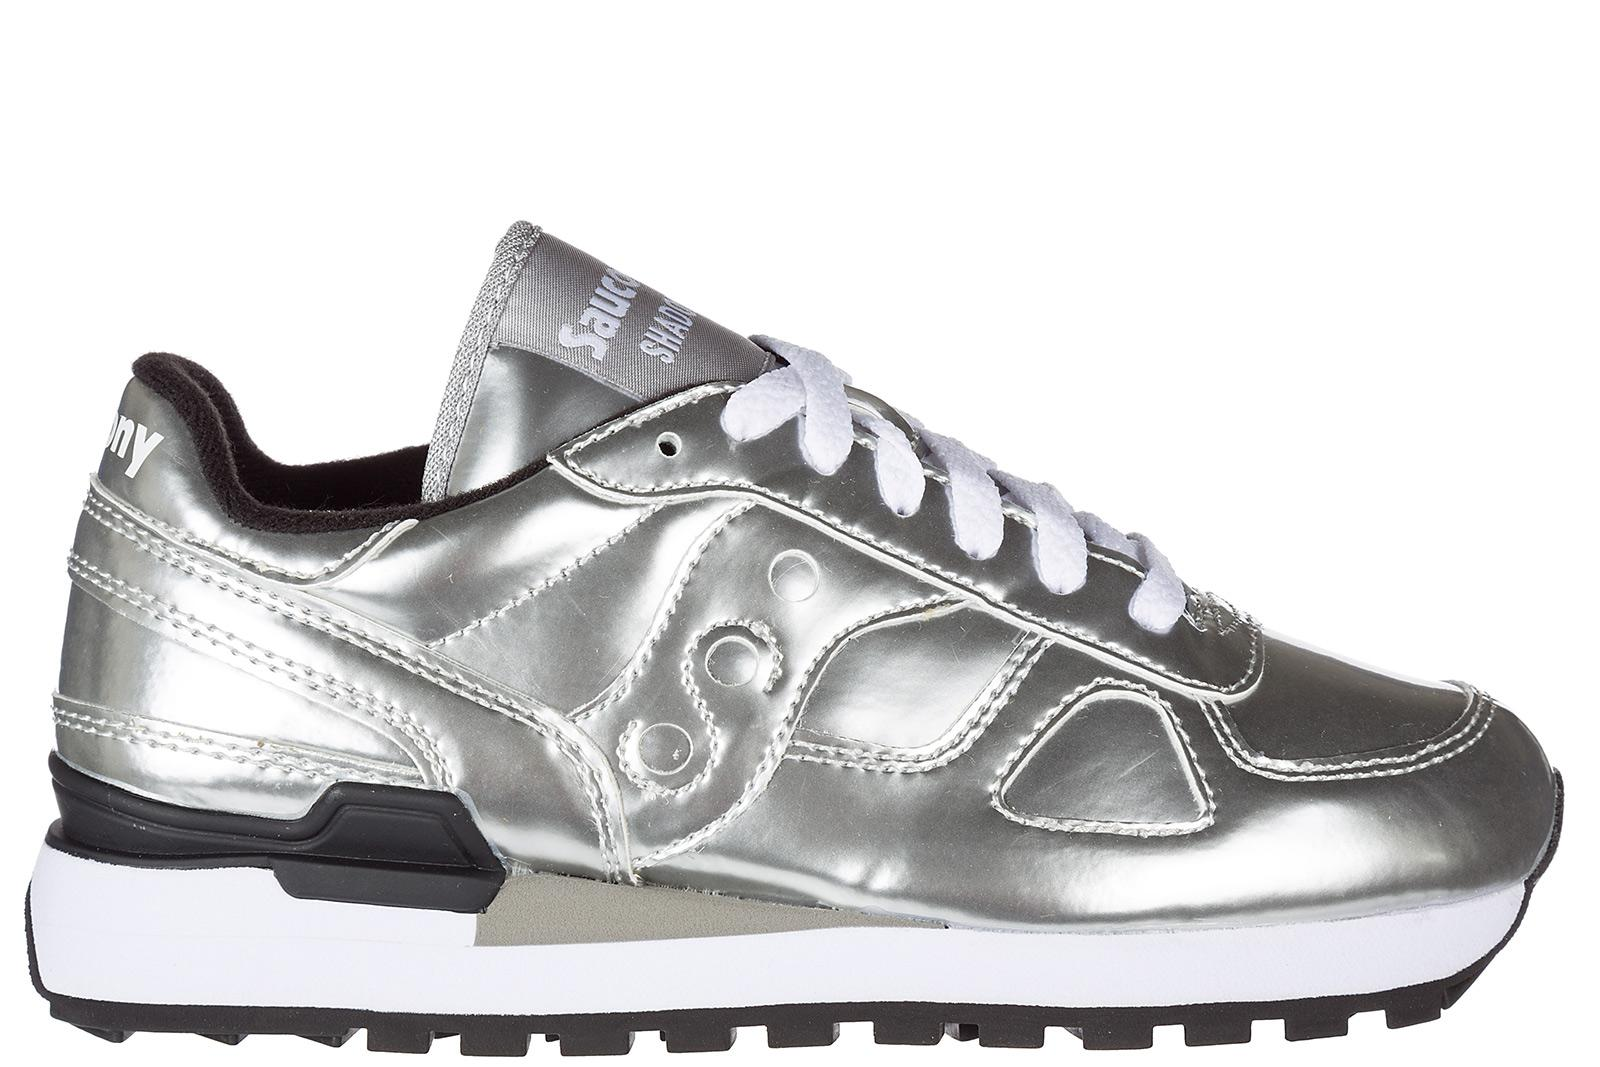 Saucony Women's Shoes Leather Trainers Sneakers Shadow In Silver